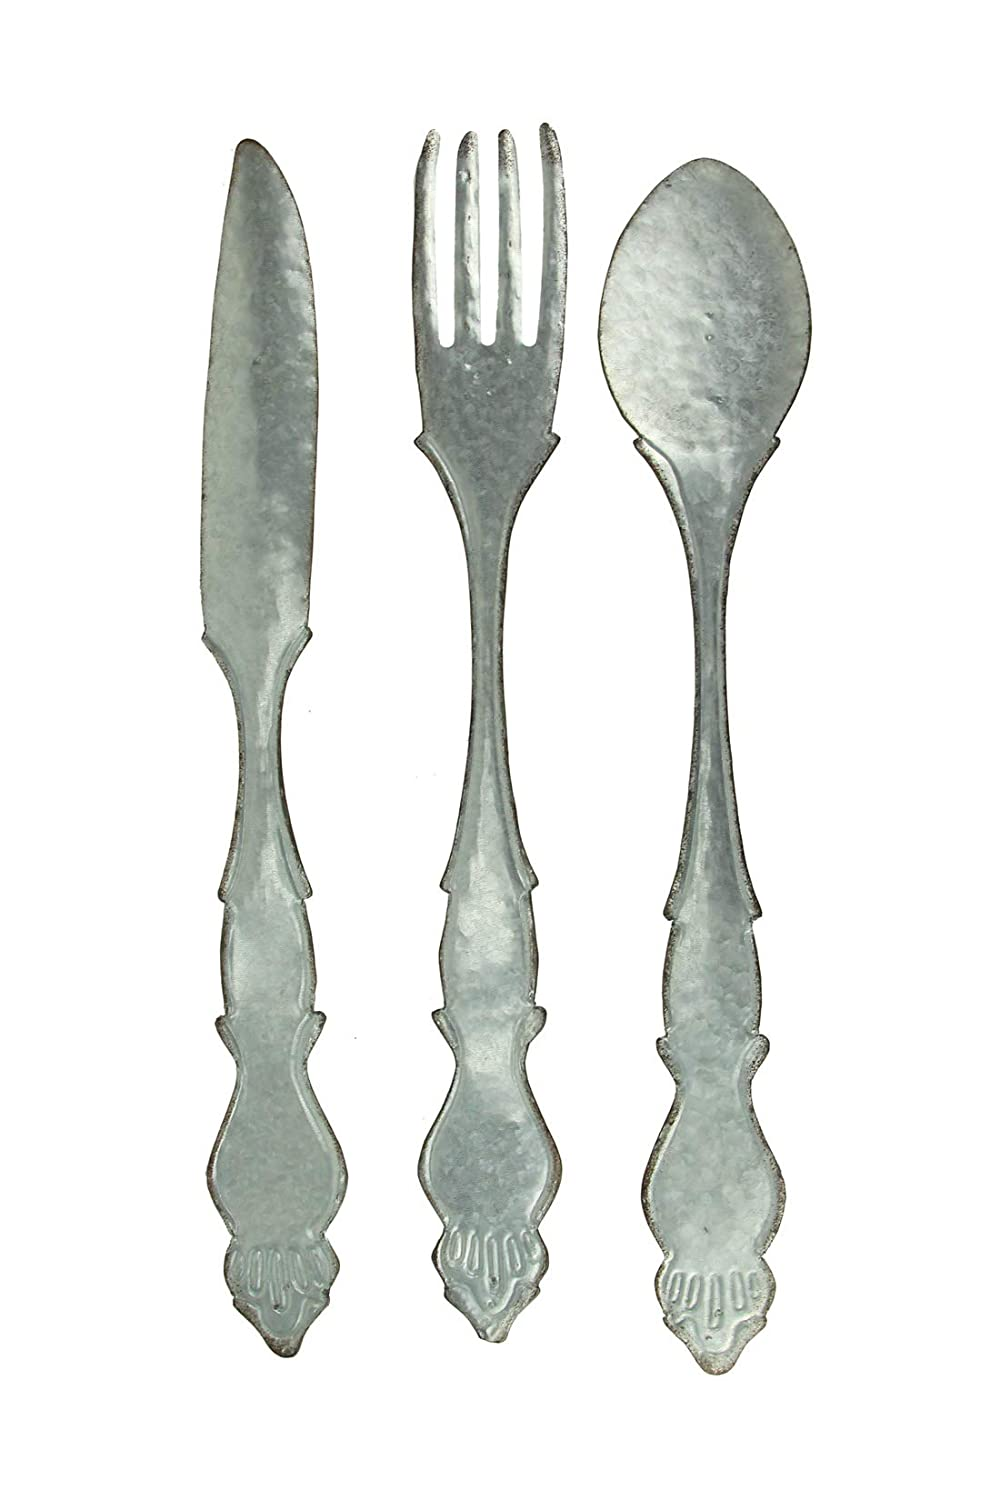 Zeckos Extra Large Galvanized Metal Fork Spoon Knife Farmhouse Kitchen Decor Wall Hanging Set